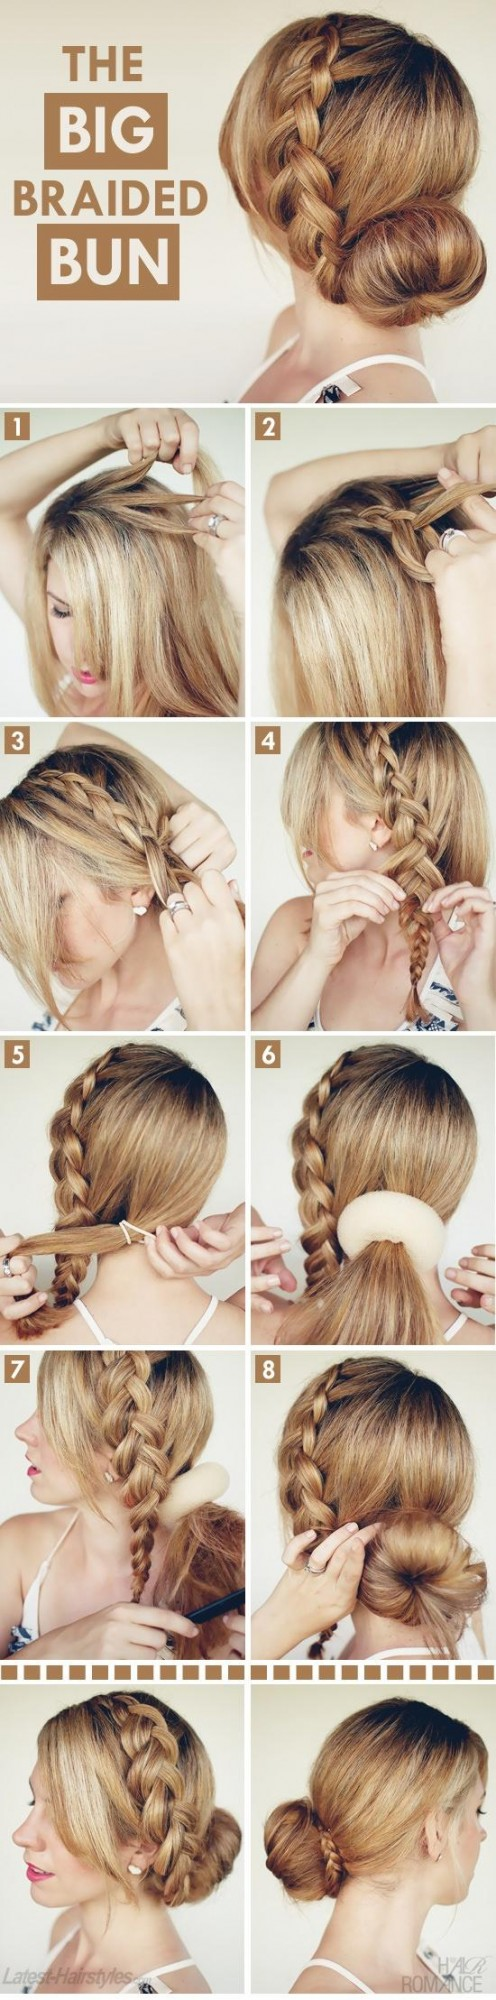 Awe Inspiring 32 Amazing And Easy Hairstyles Tutorials For Hot Summer Days Hairstyle Inspiration Daily Dogsangcom